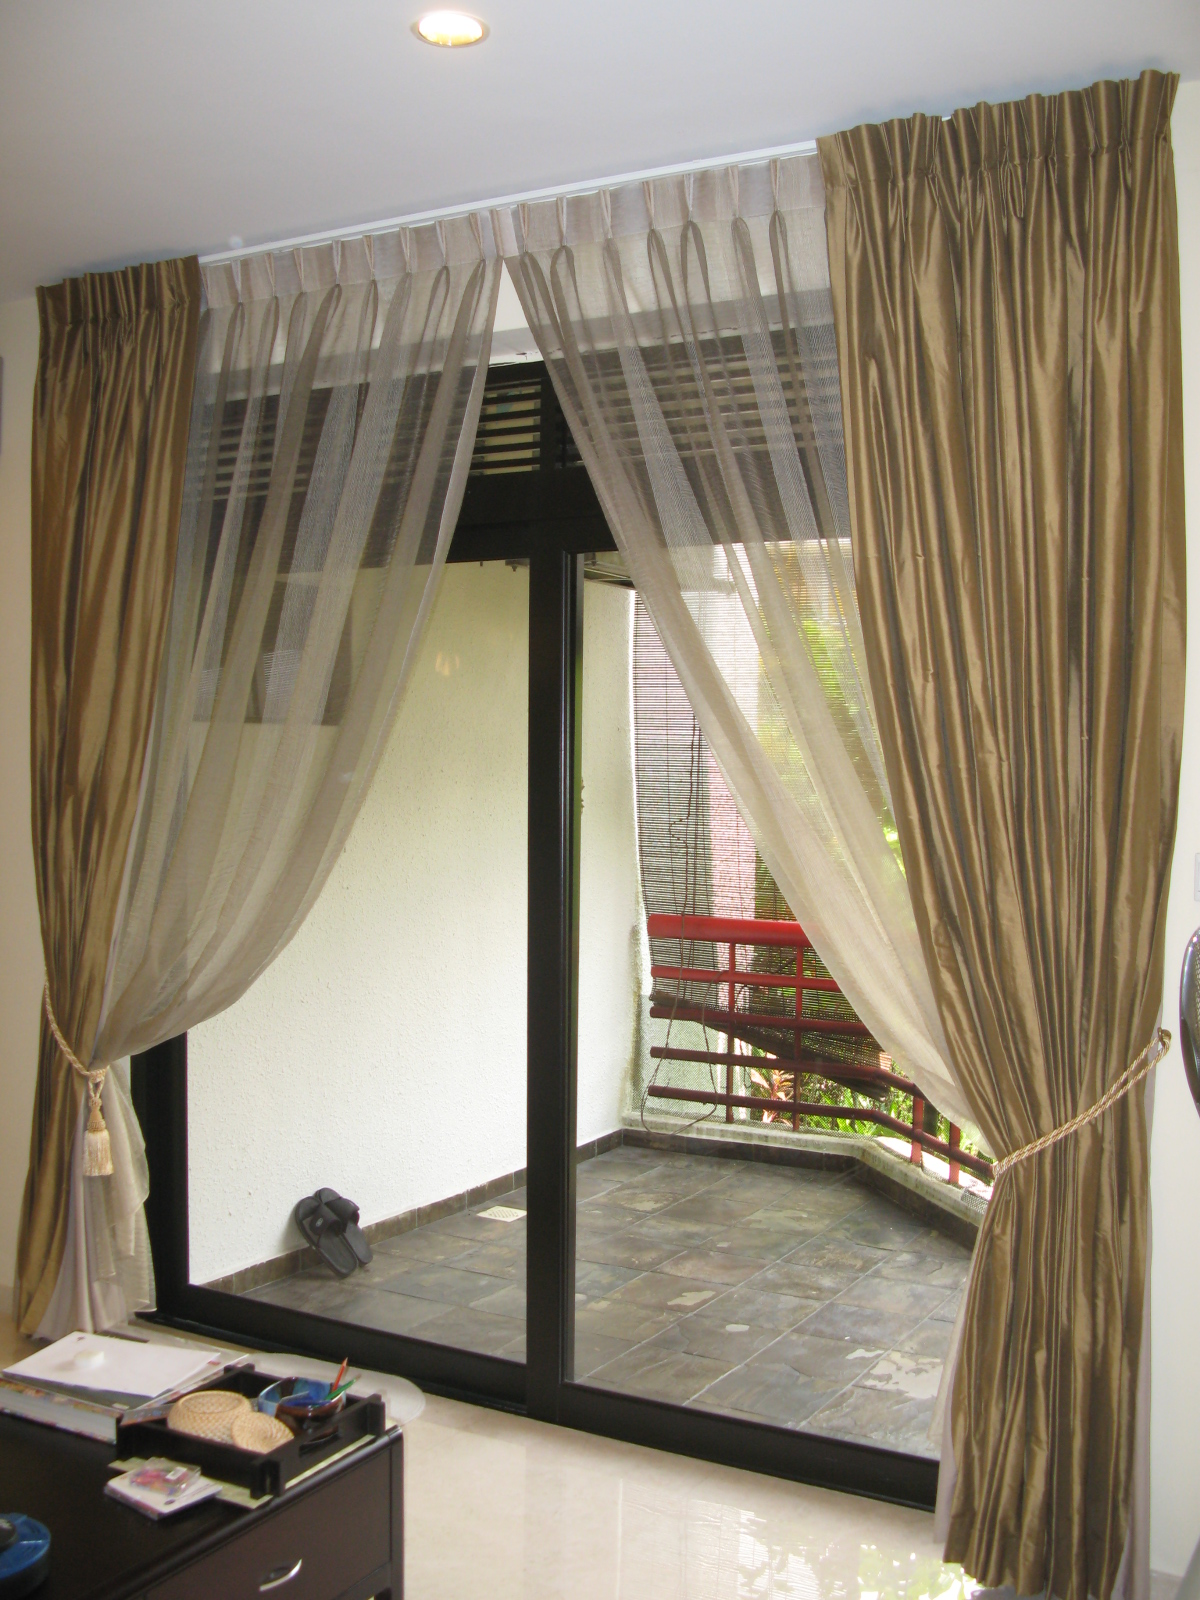 Curtains For Patio Door Ideas And Design Heading To Patio Space With Modern Look Interior Living Room Design